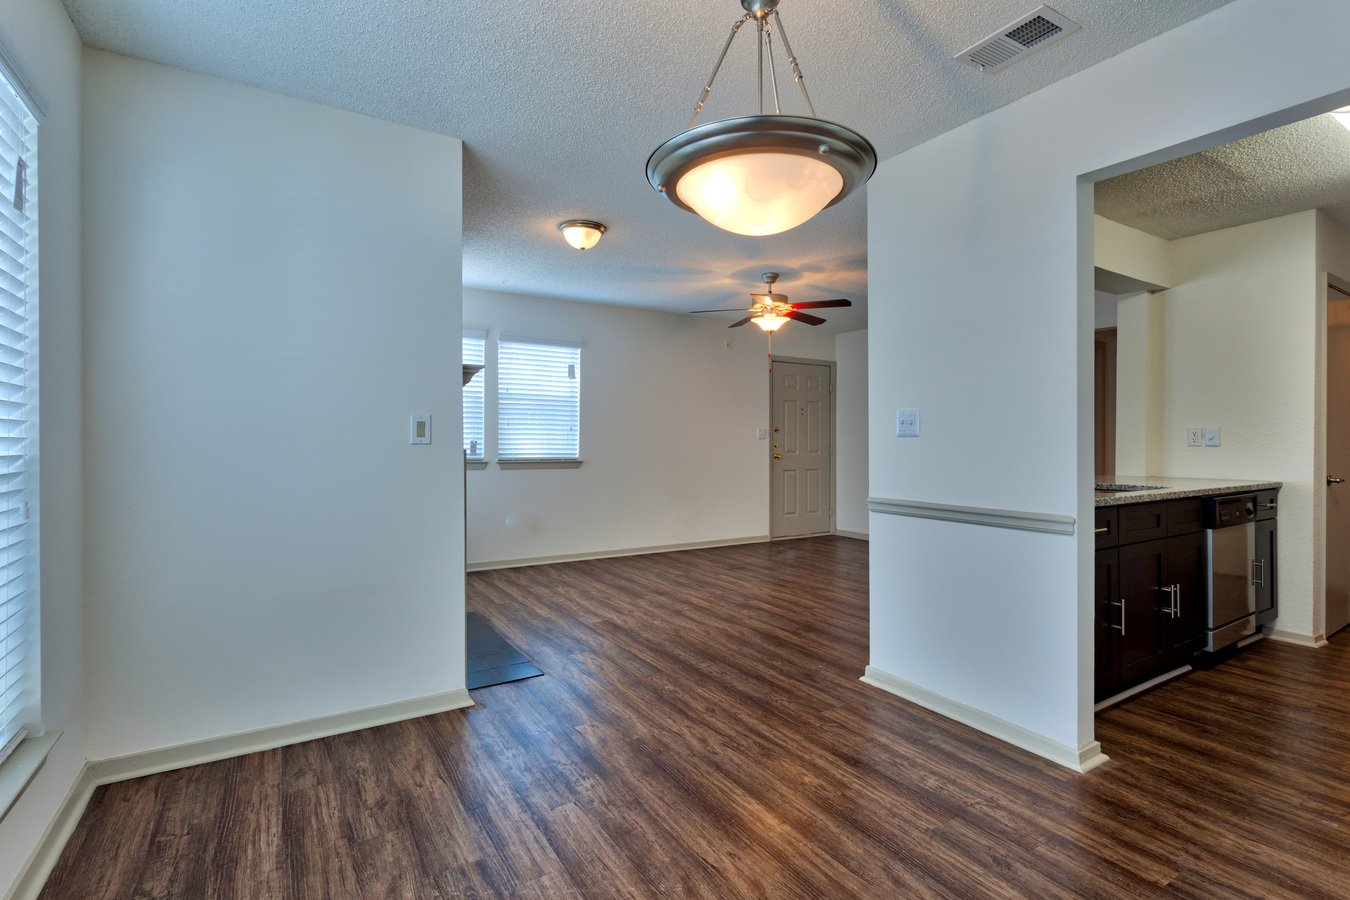 1 Bedroom 1 Bathroom Apartment for rent at The Clarion in Decatur, GA